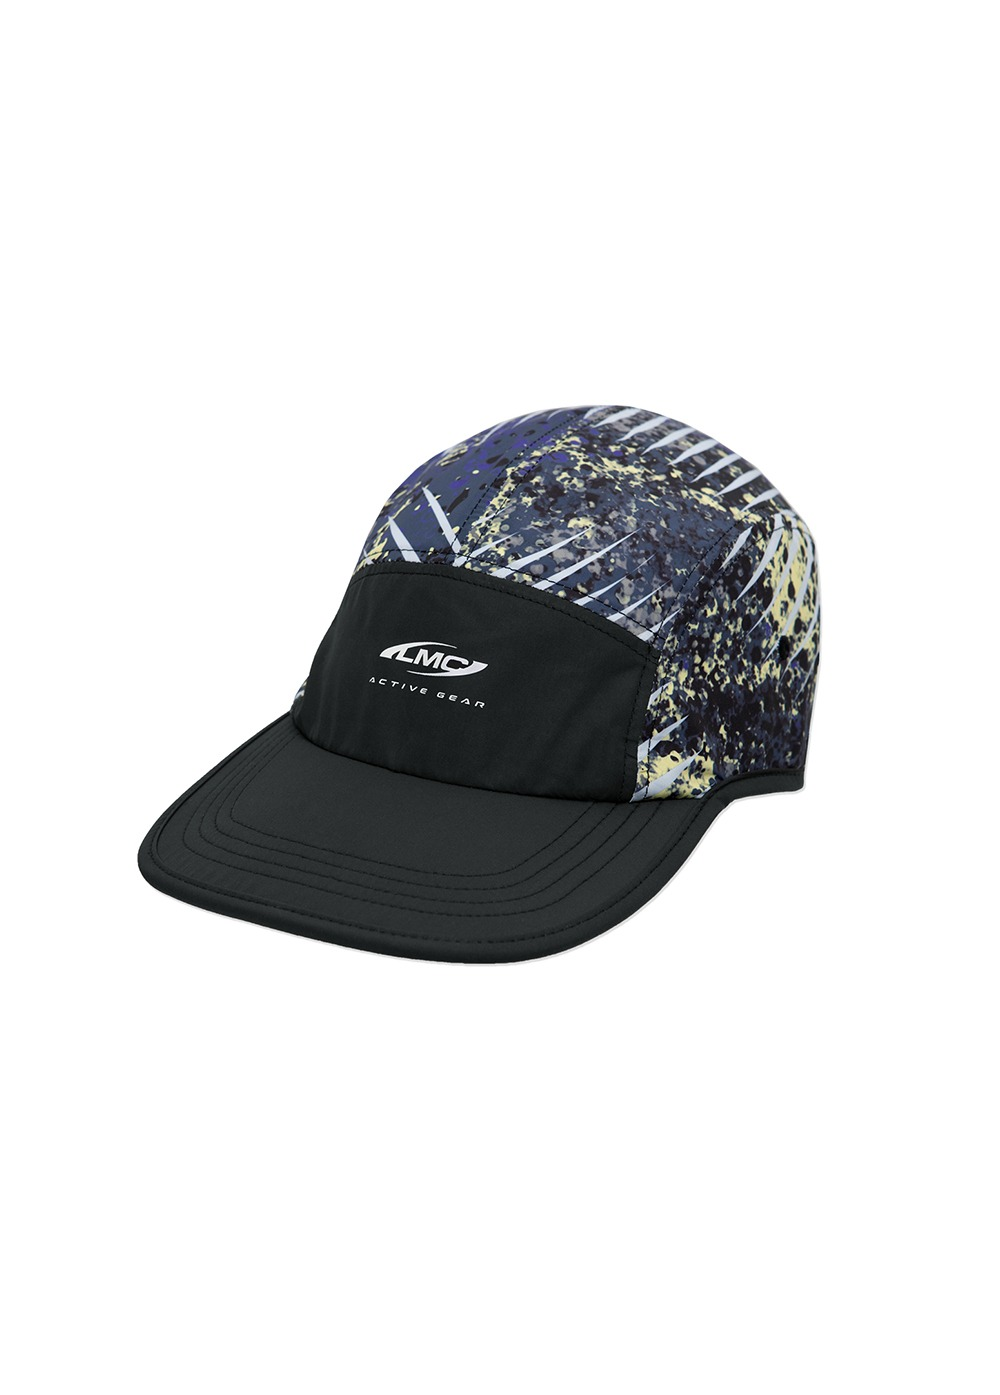 LMC ACTIVE GEAR RUNNING CAP multi